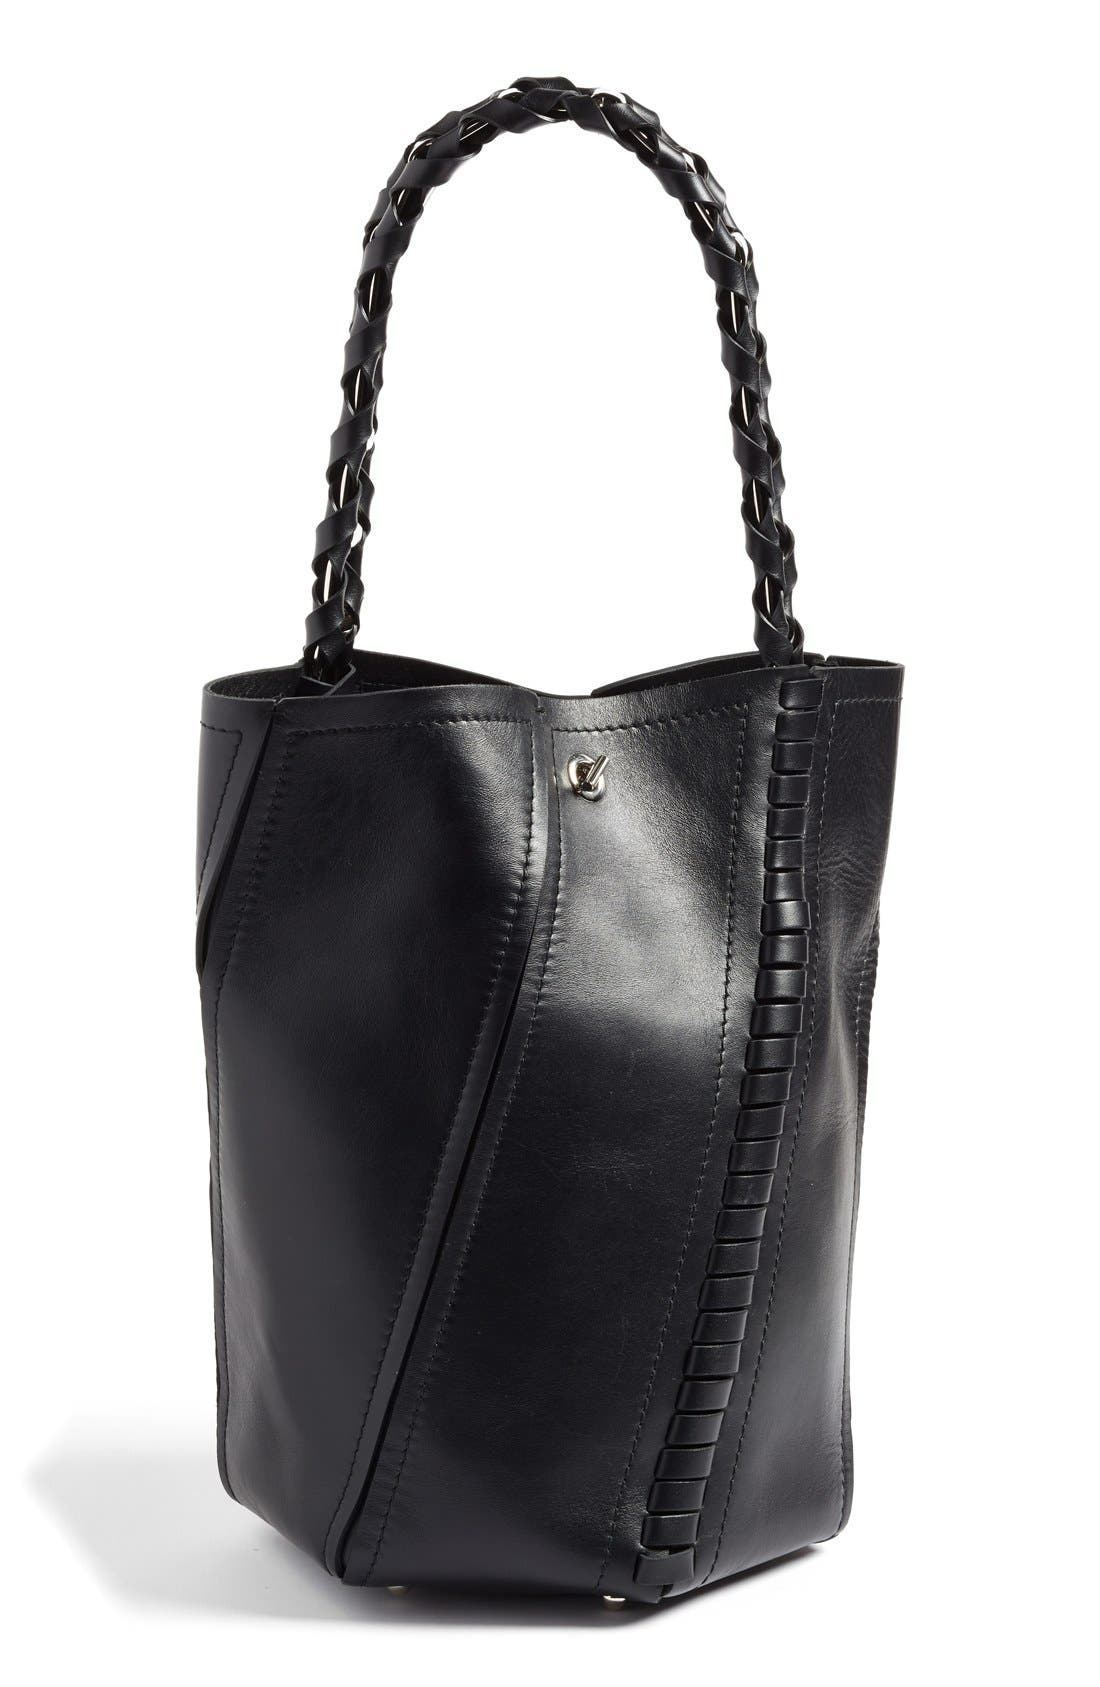 Main Image - Proenza Schouler 'Medium Hex' Whipstitch Leather Bucket Bag